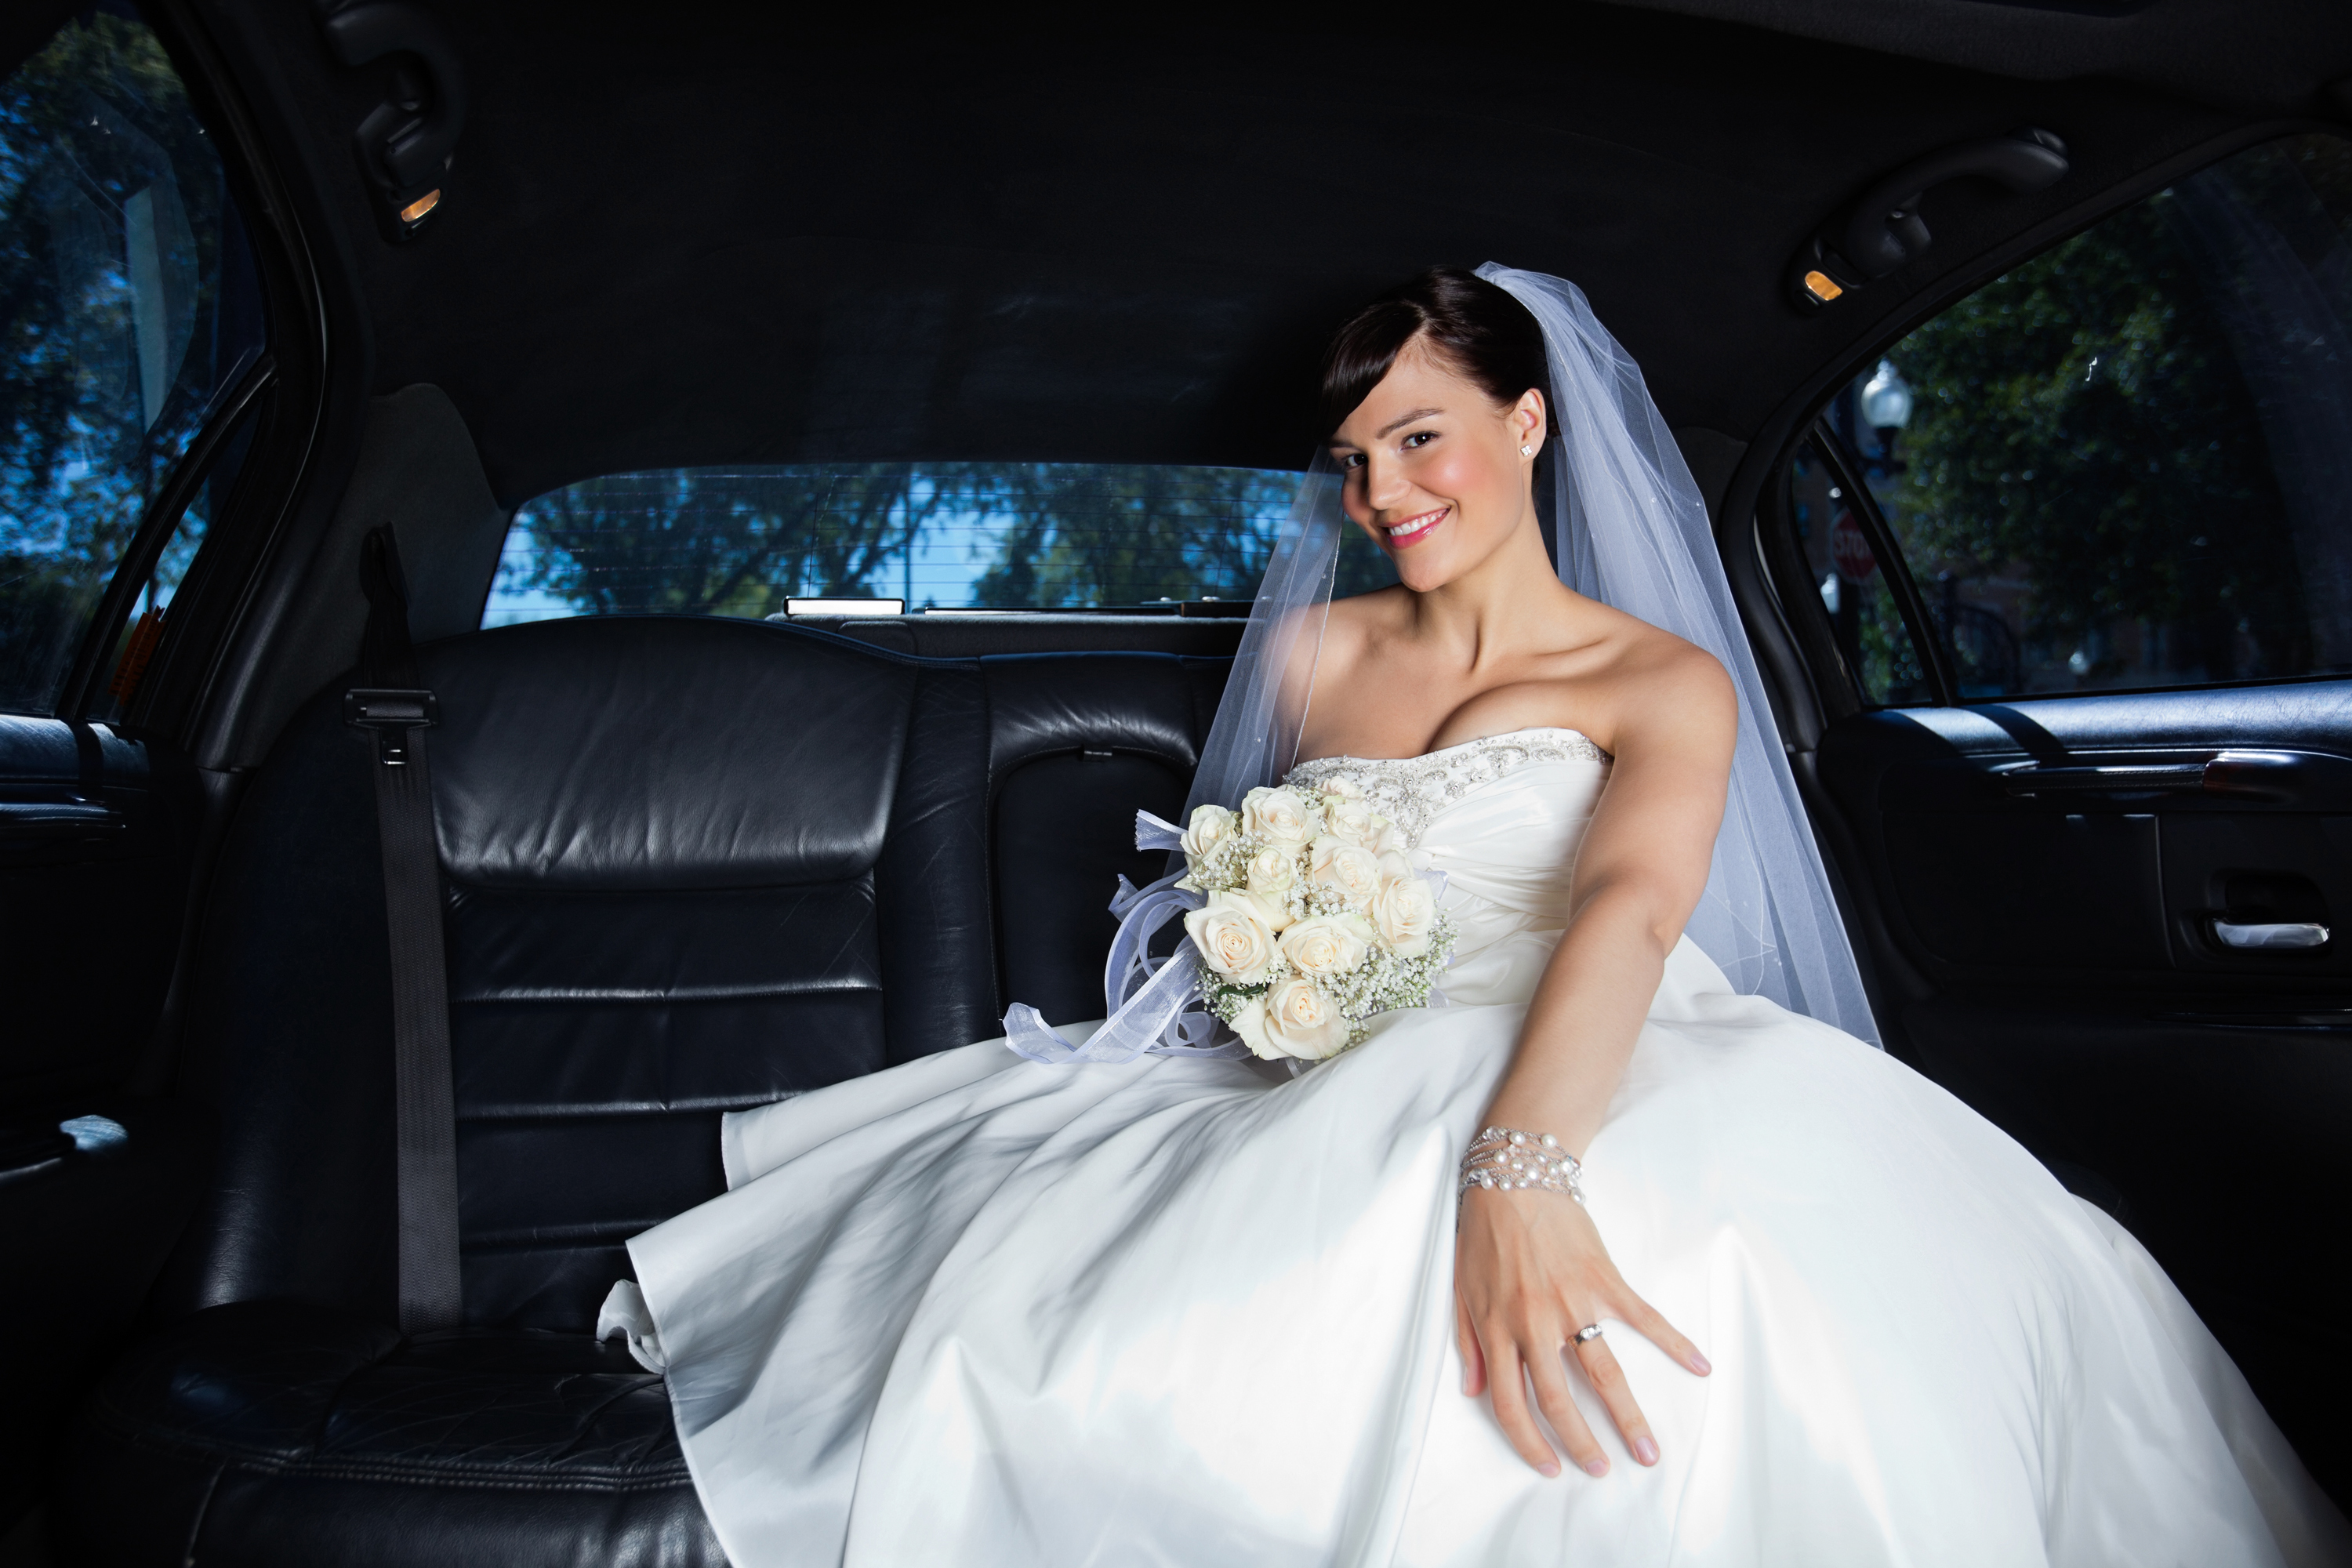 bigstock-Beautiful-bride-sitting-in-car-29877425